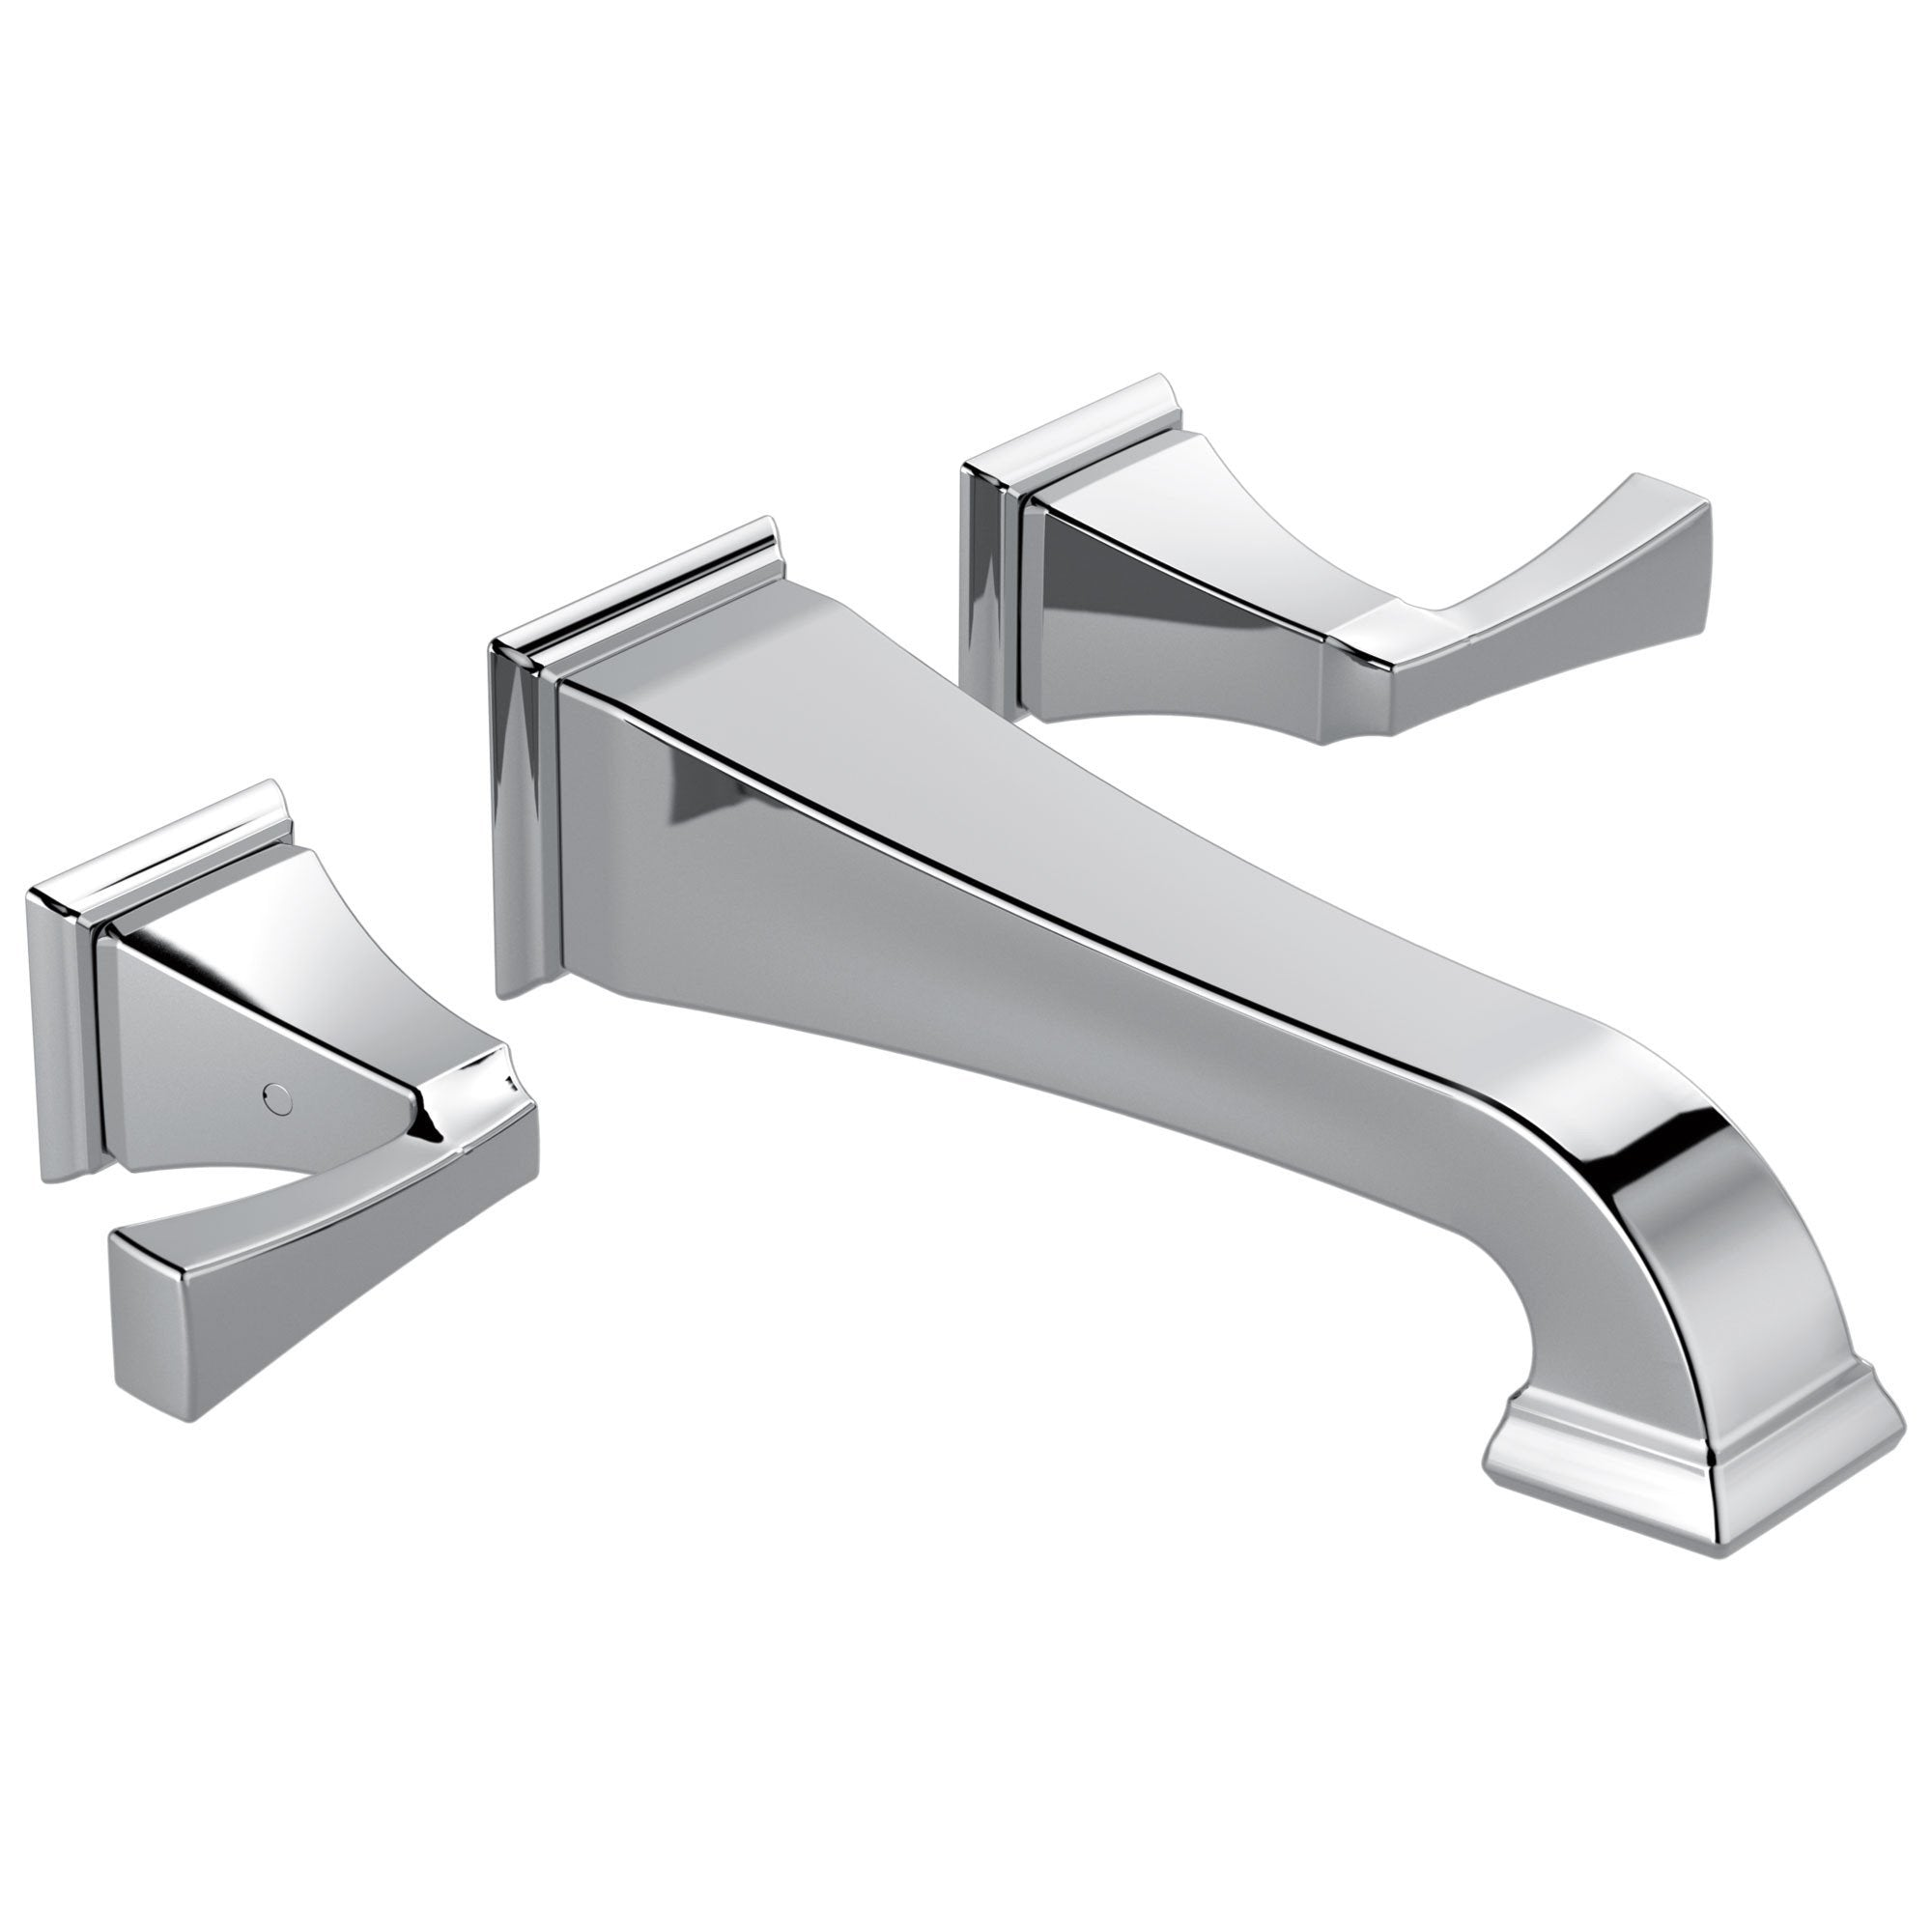 Delta Dryden Collection Chrome Finish Two Handle Wall Mounted Bathroom Sink Lavatory Faucet Trim Kit (Requires Rough-in Valve) DT3551LFWL